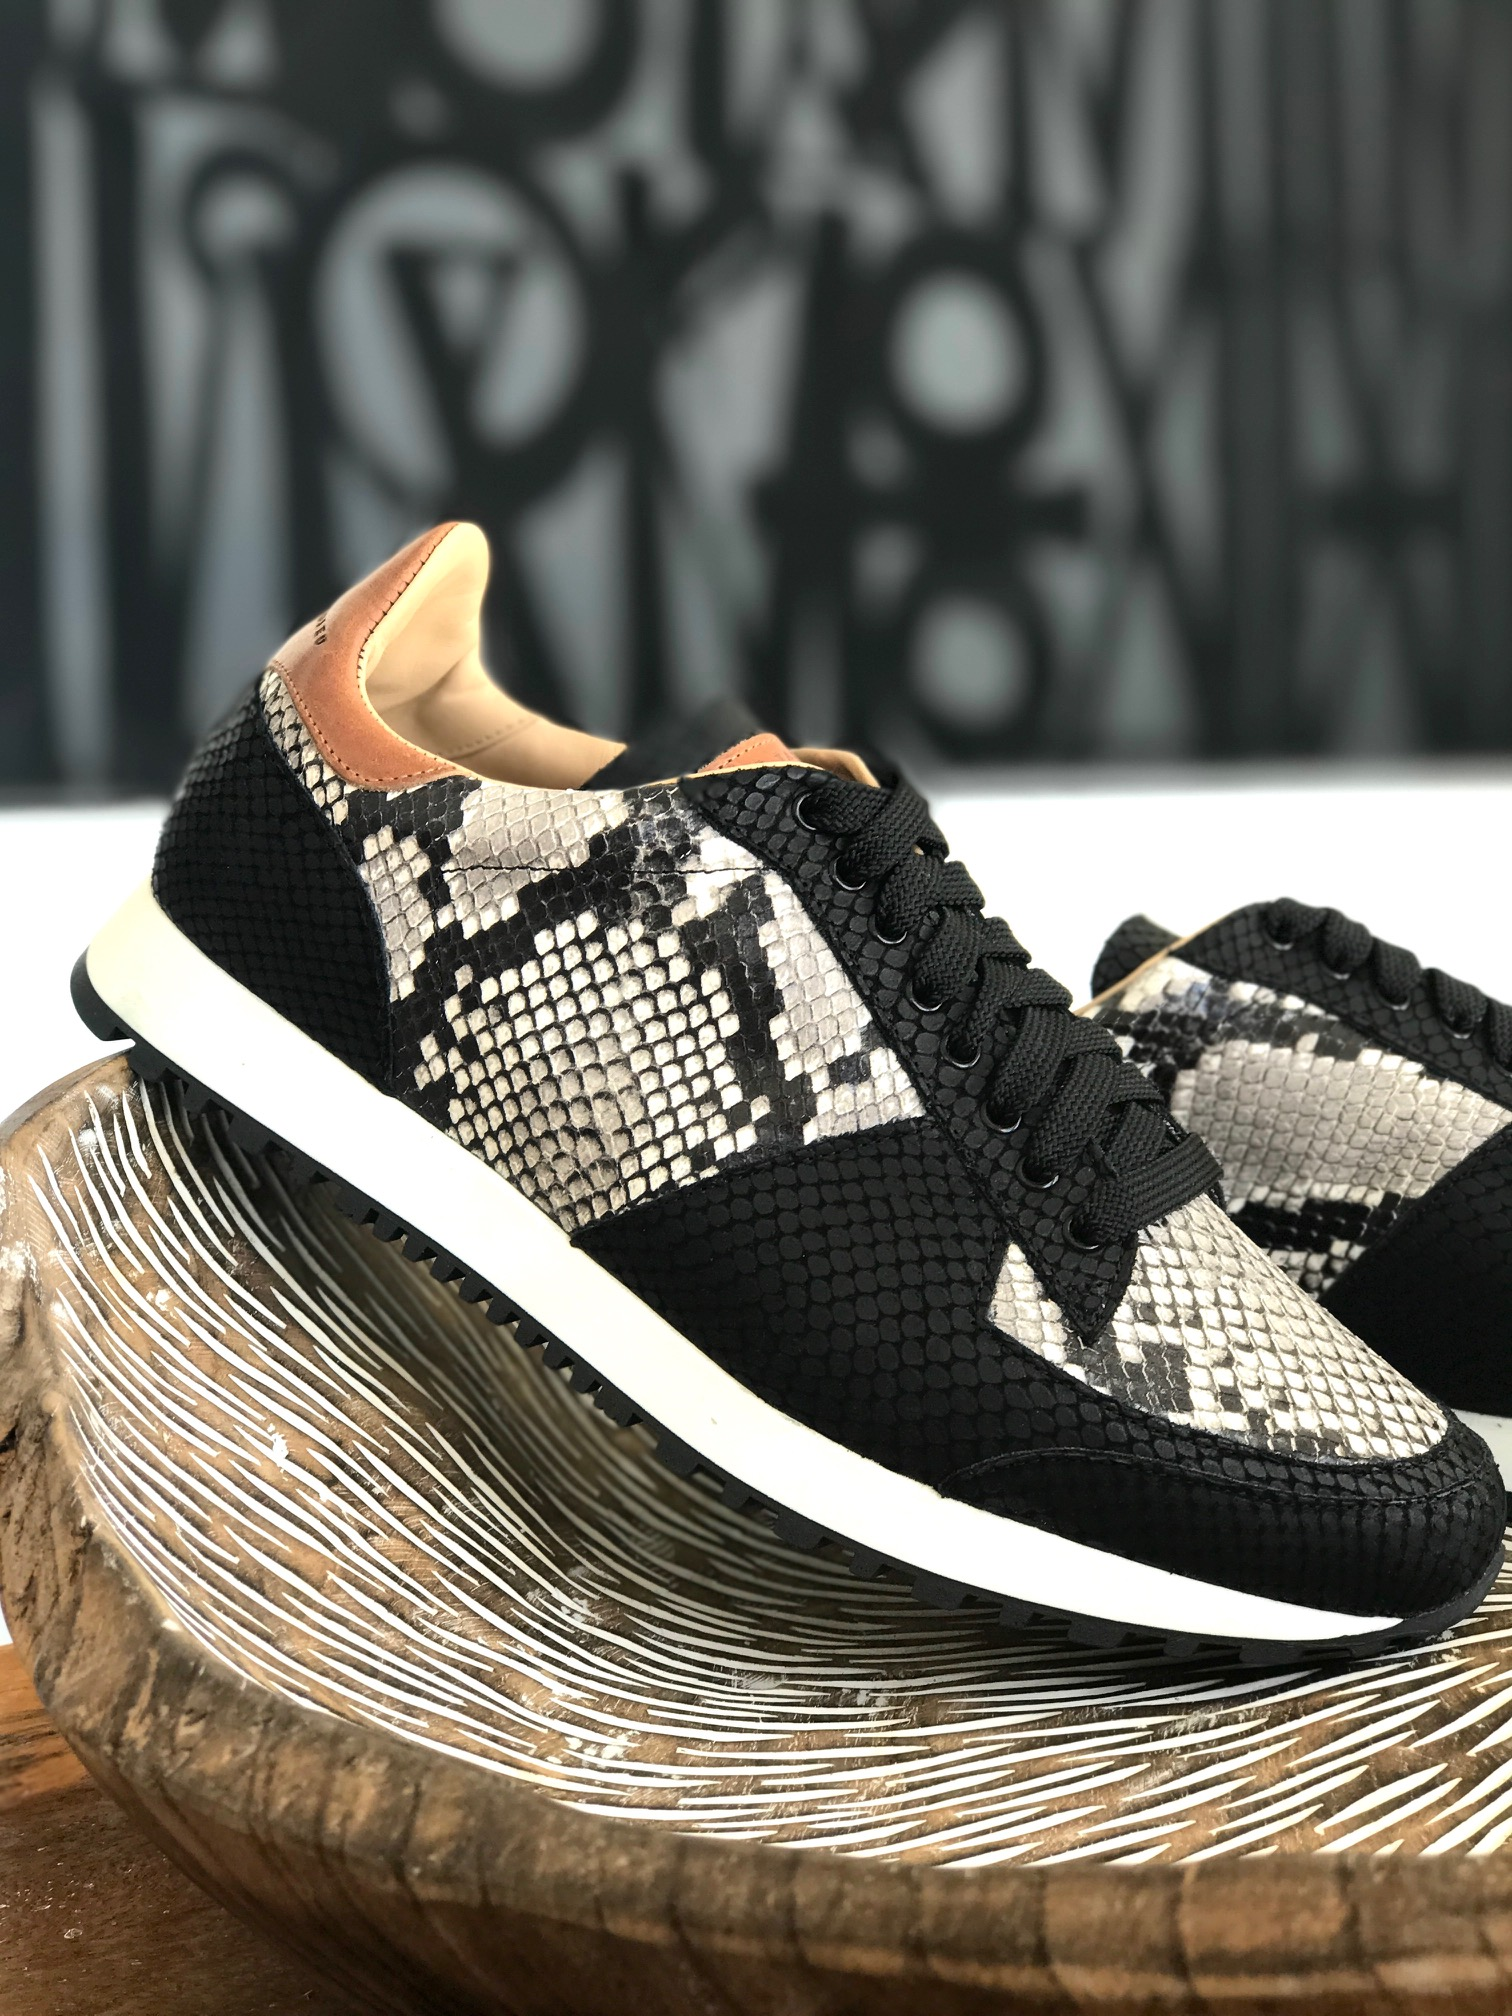 How would you describe the brand's aesthetic? - The brand focuses on creating a laid back luxurious aesthetic. It has a very versatile design that you can wear dressed up or down depending on your mood. A perfect example of what we do is creating runners with back support enabling you to walk as an athletic sneaker for its comfort but designed and meticulously handcrafted by hand with noble materials and skins such as Pythons to give it the luxurious feel.